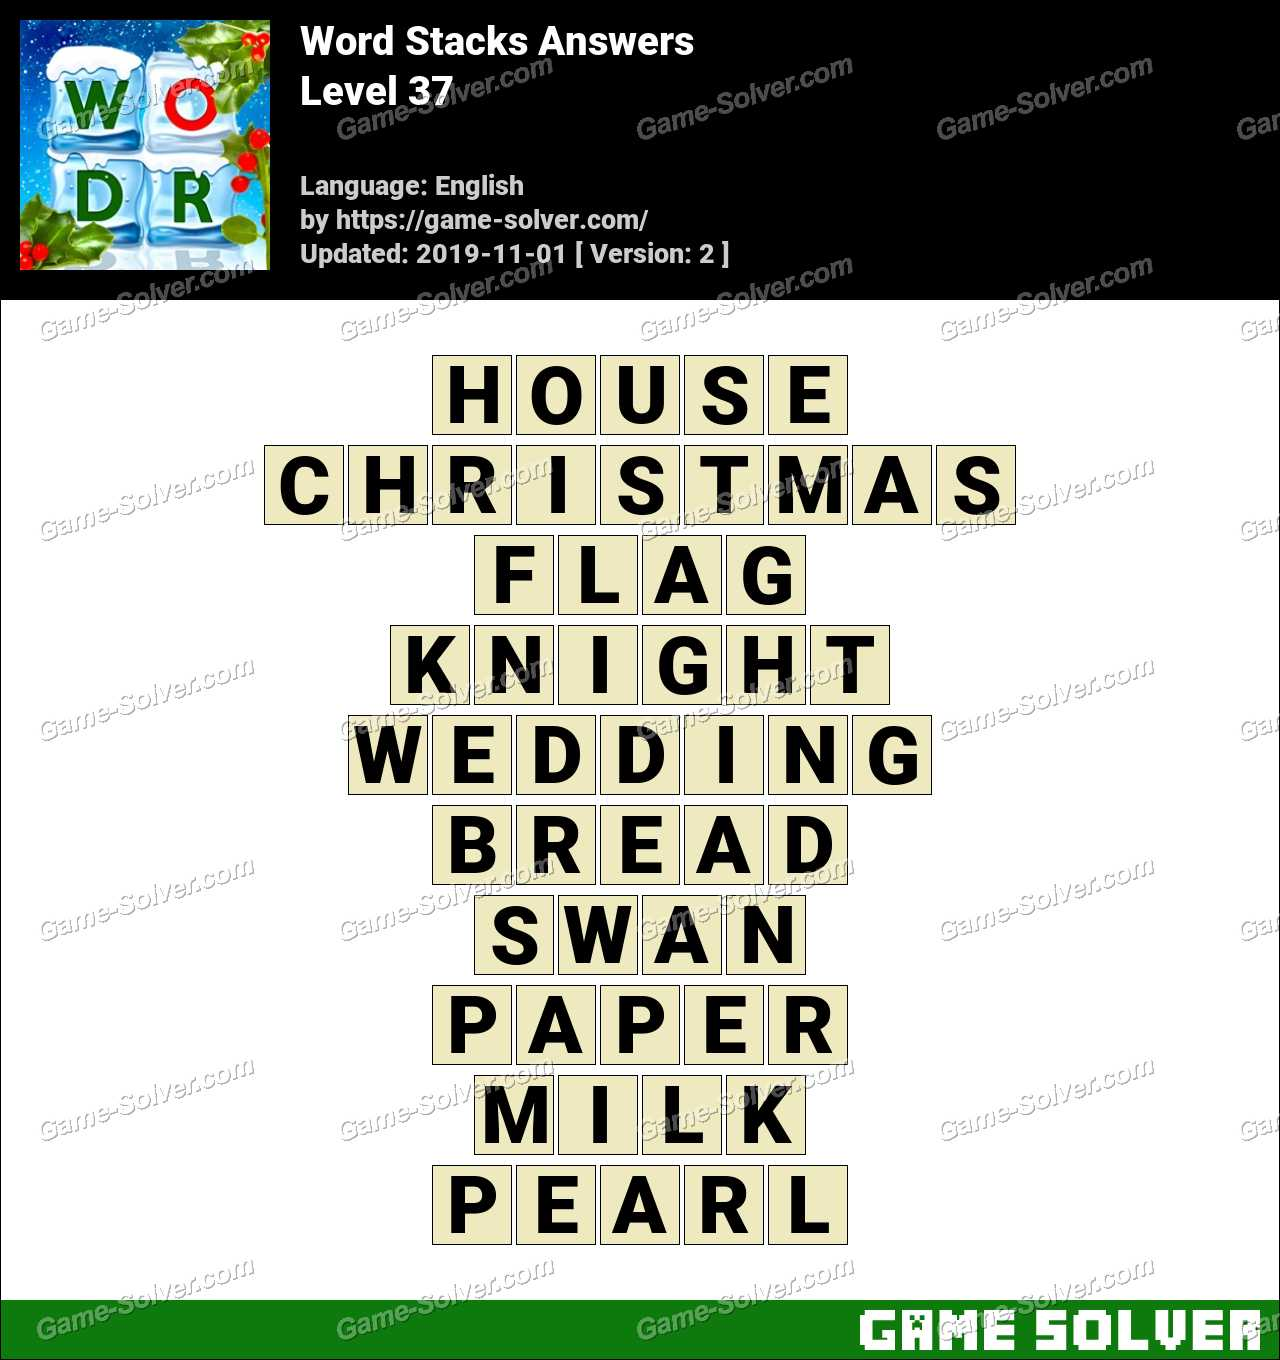 Word Stacks Level 37 Answers